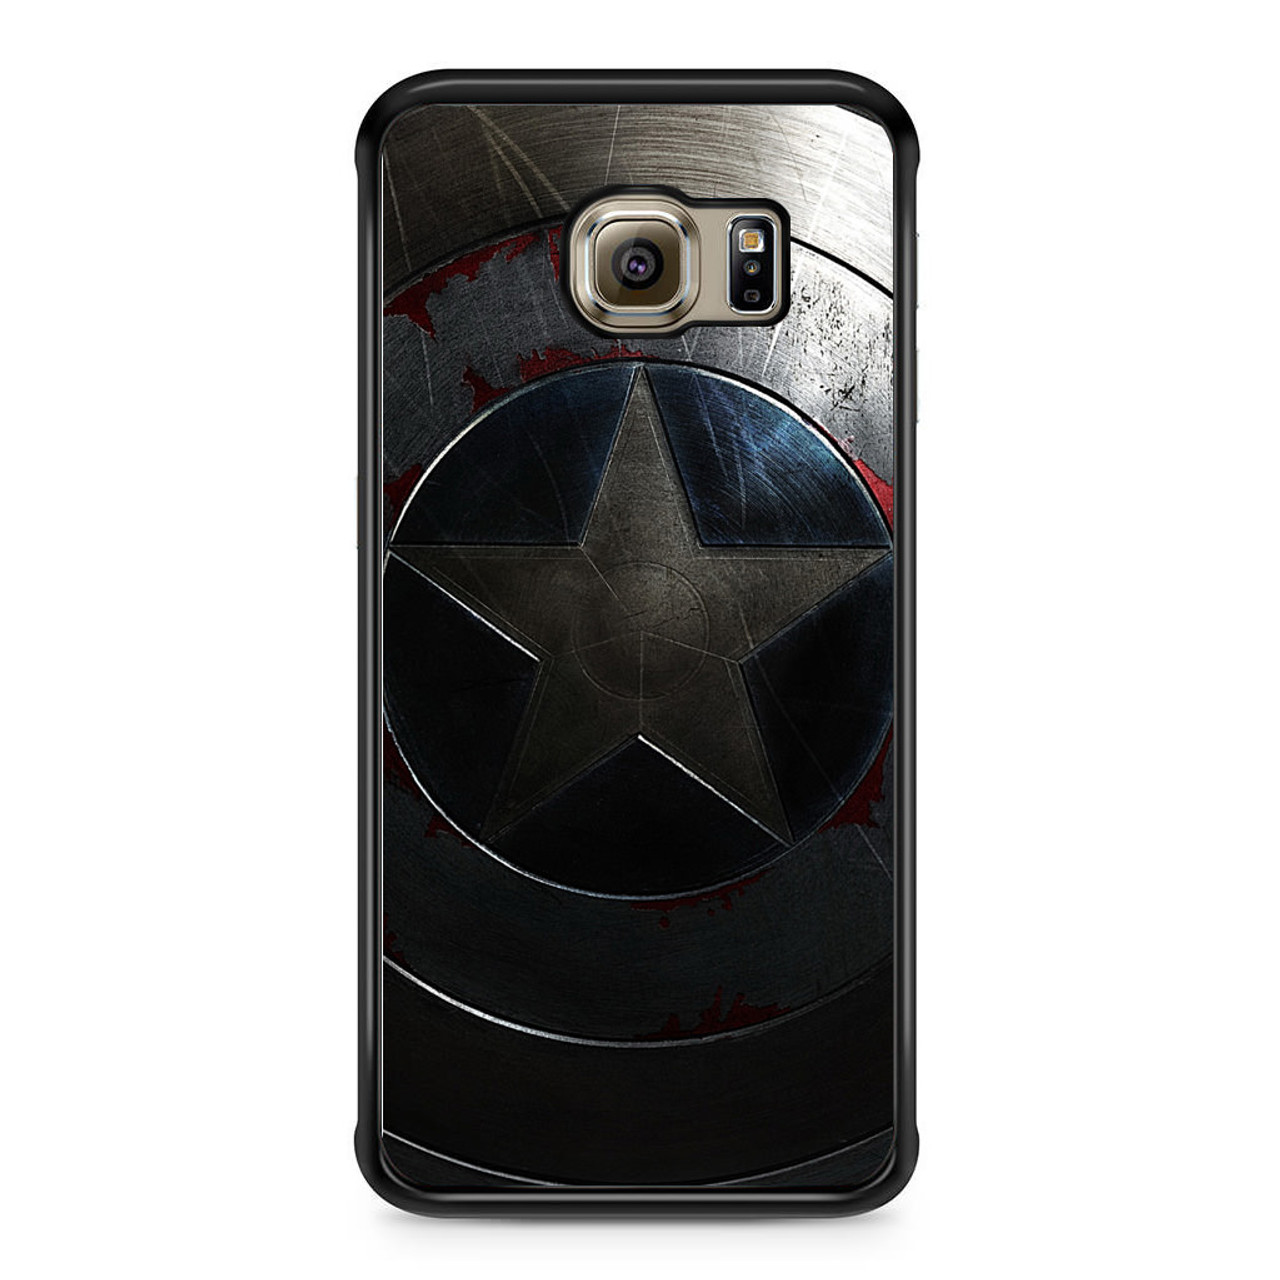 online retailer 1b033 09275 Captain America The Winter Soldier Samsung Galaxy S6 Edge Case